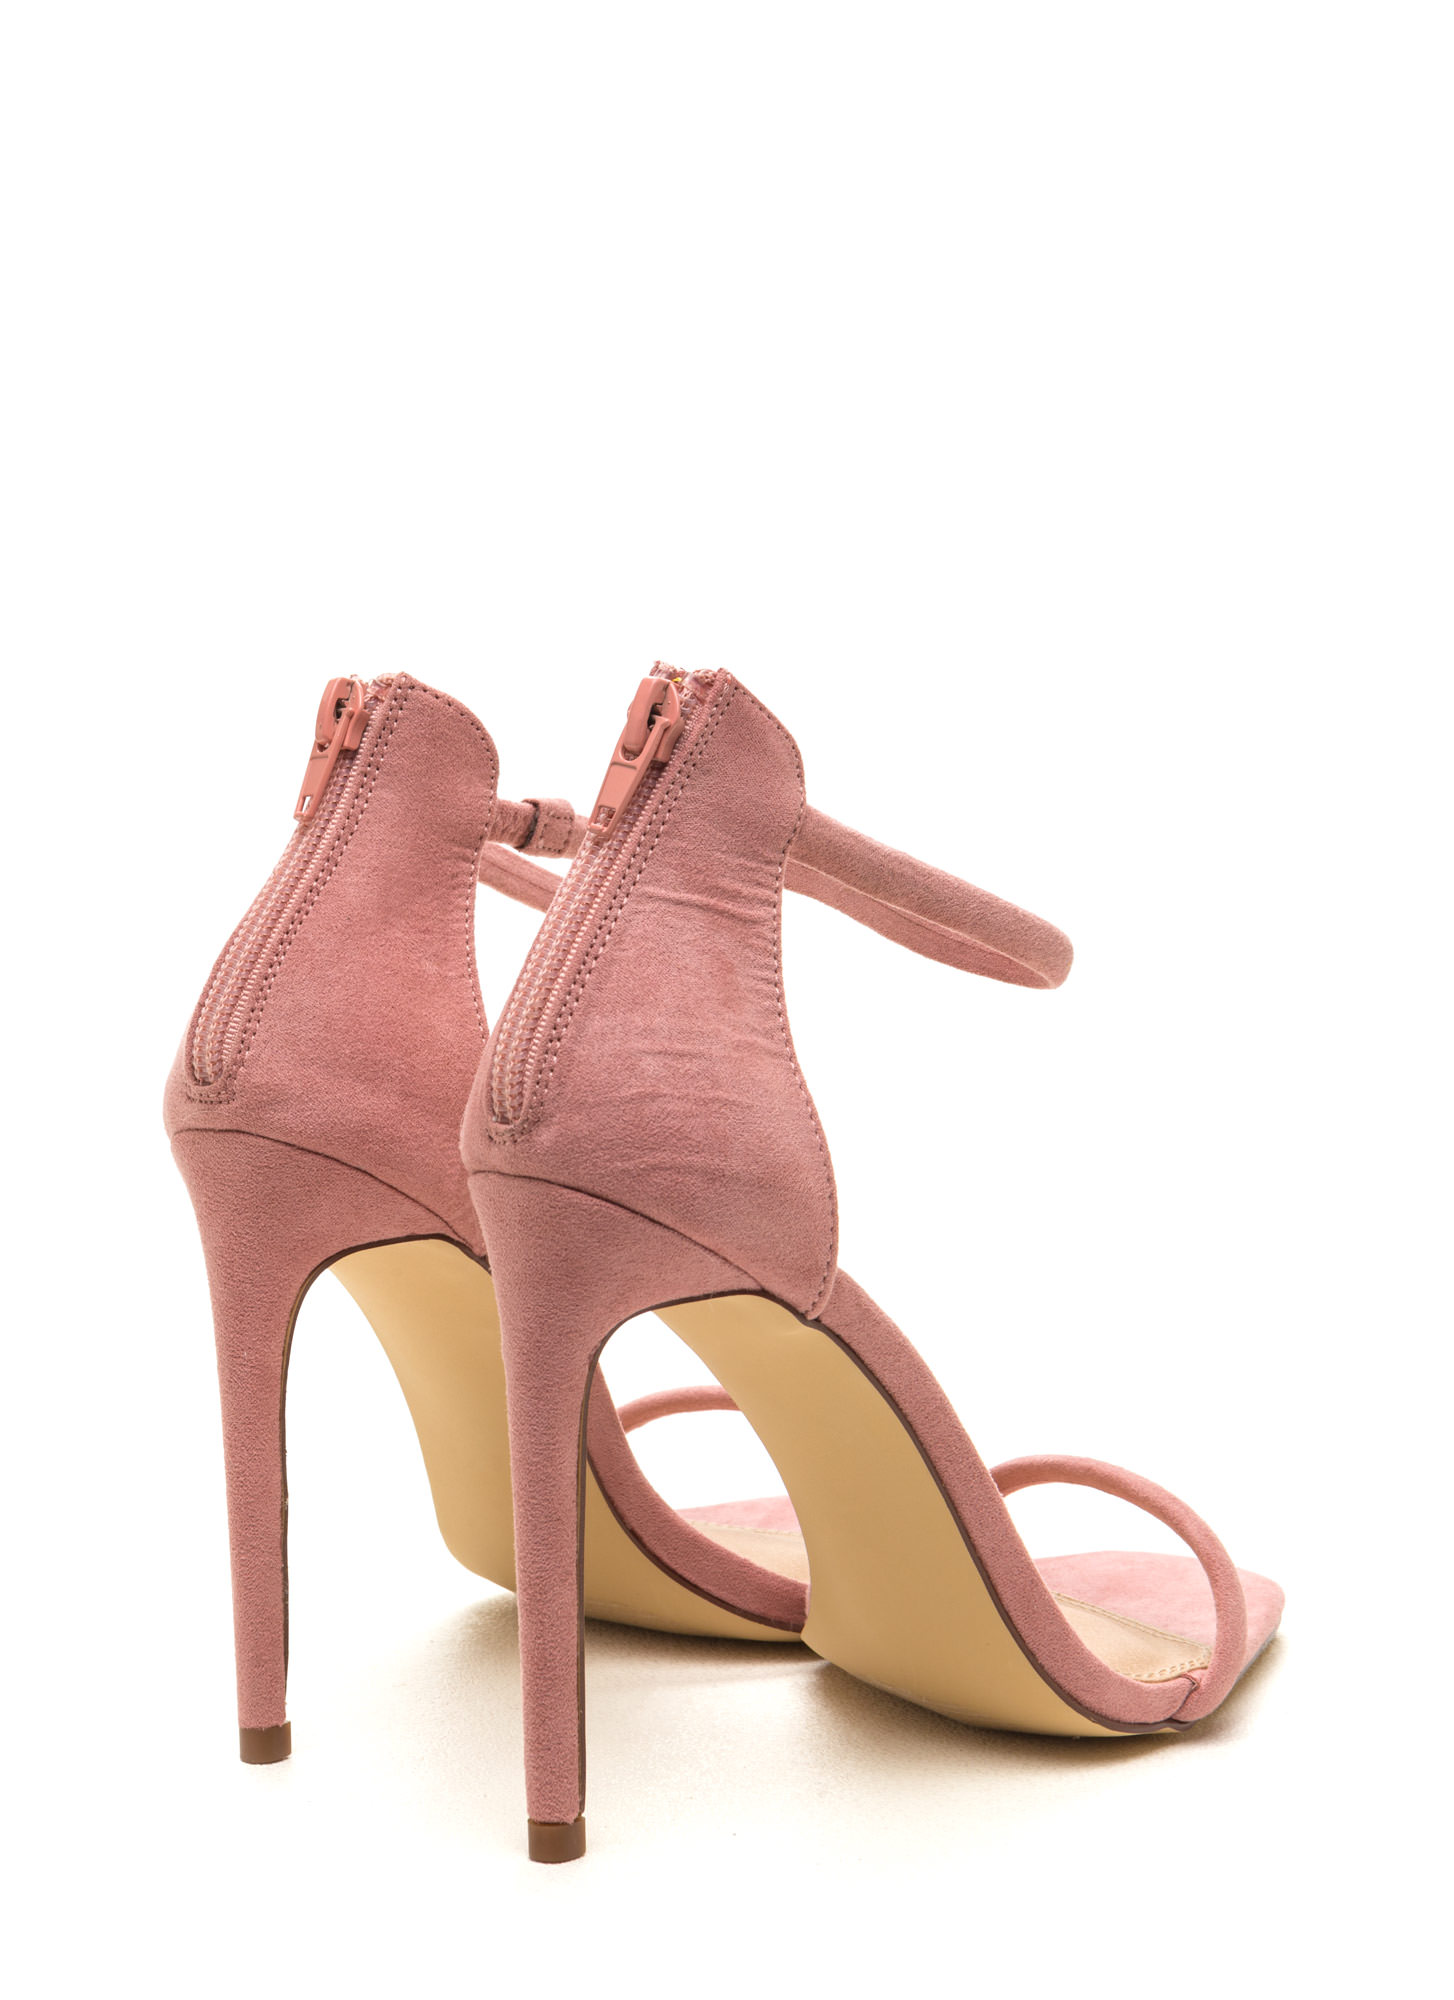 Pink Ankle Strap Heels - Is Heel